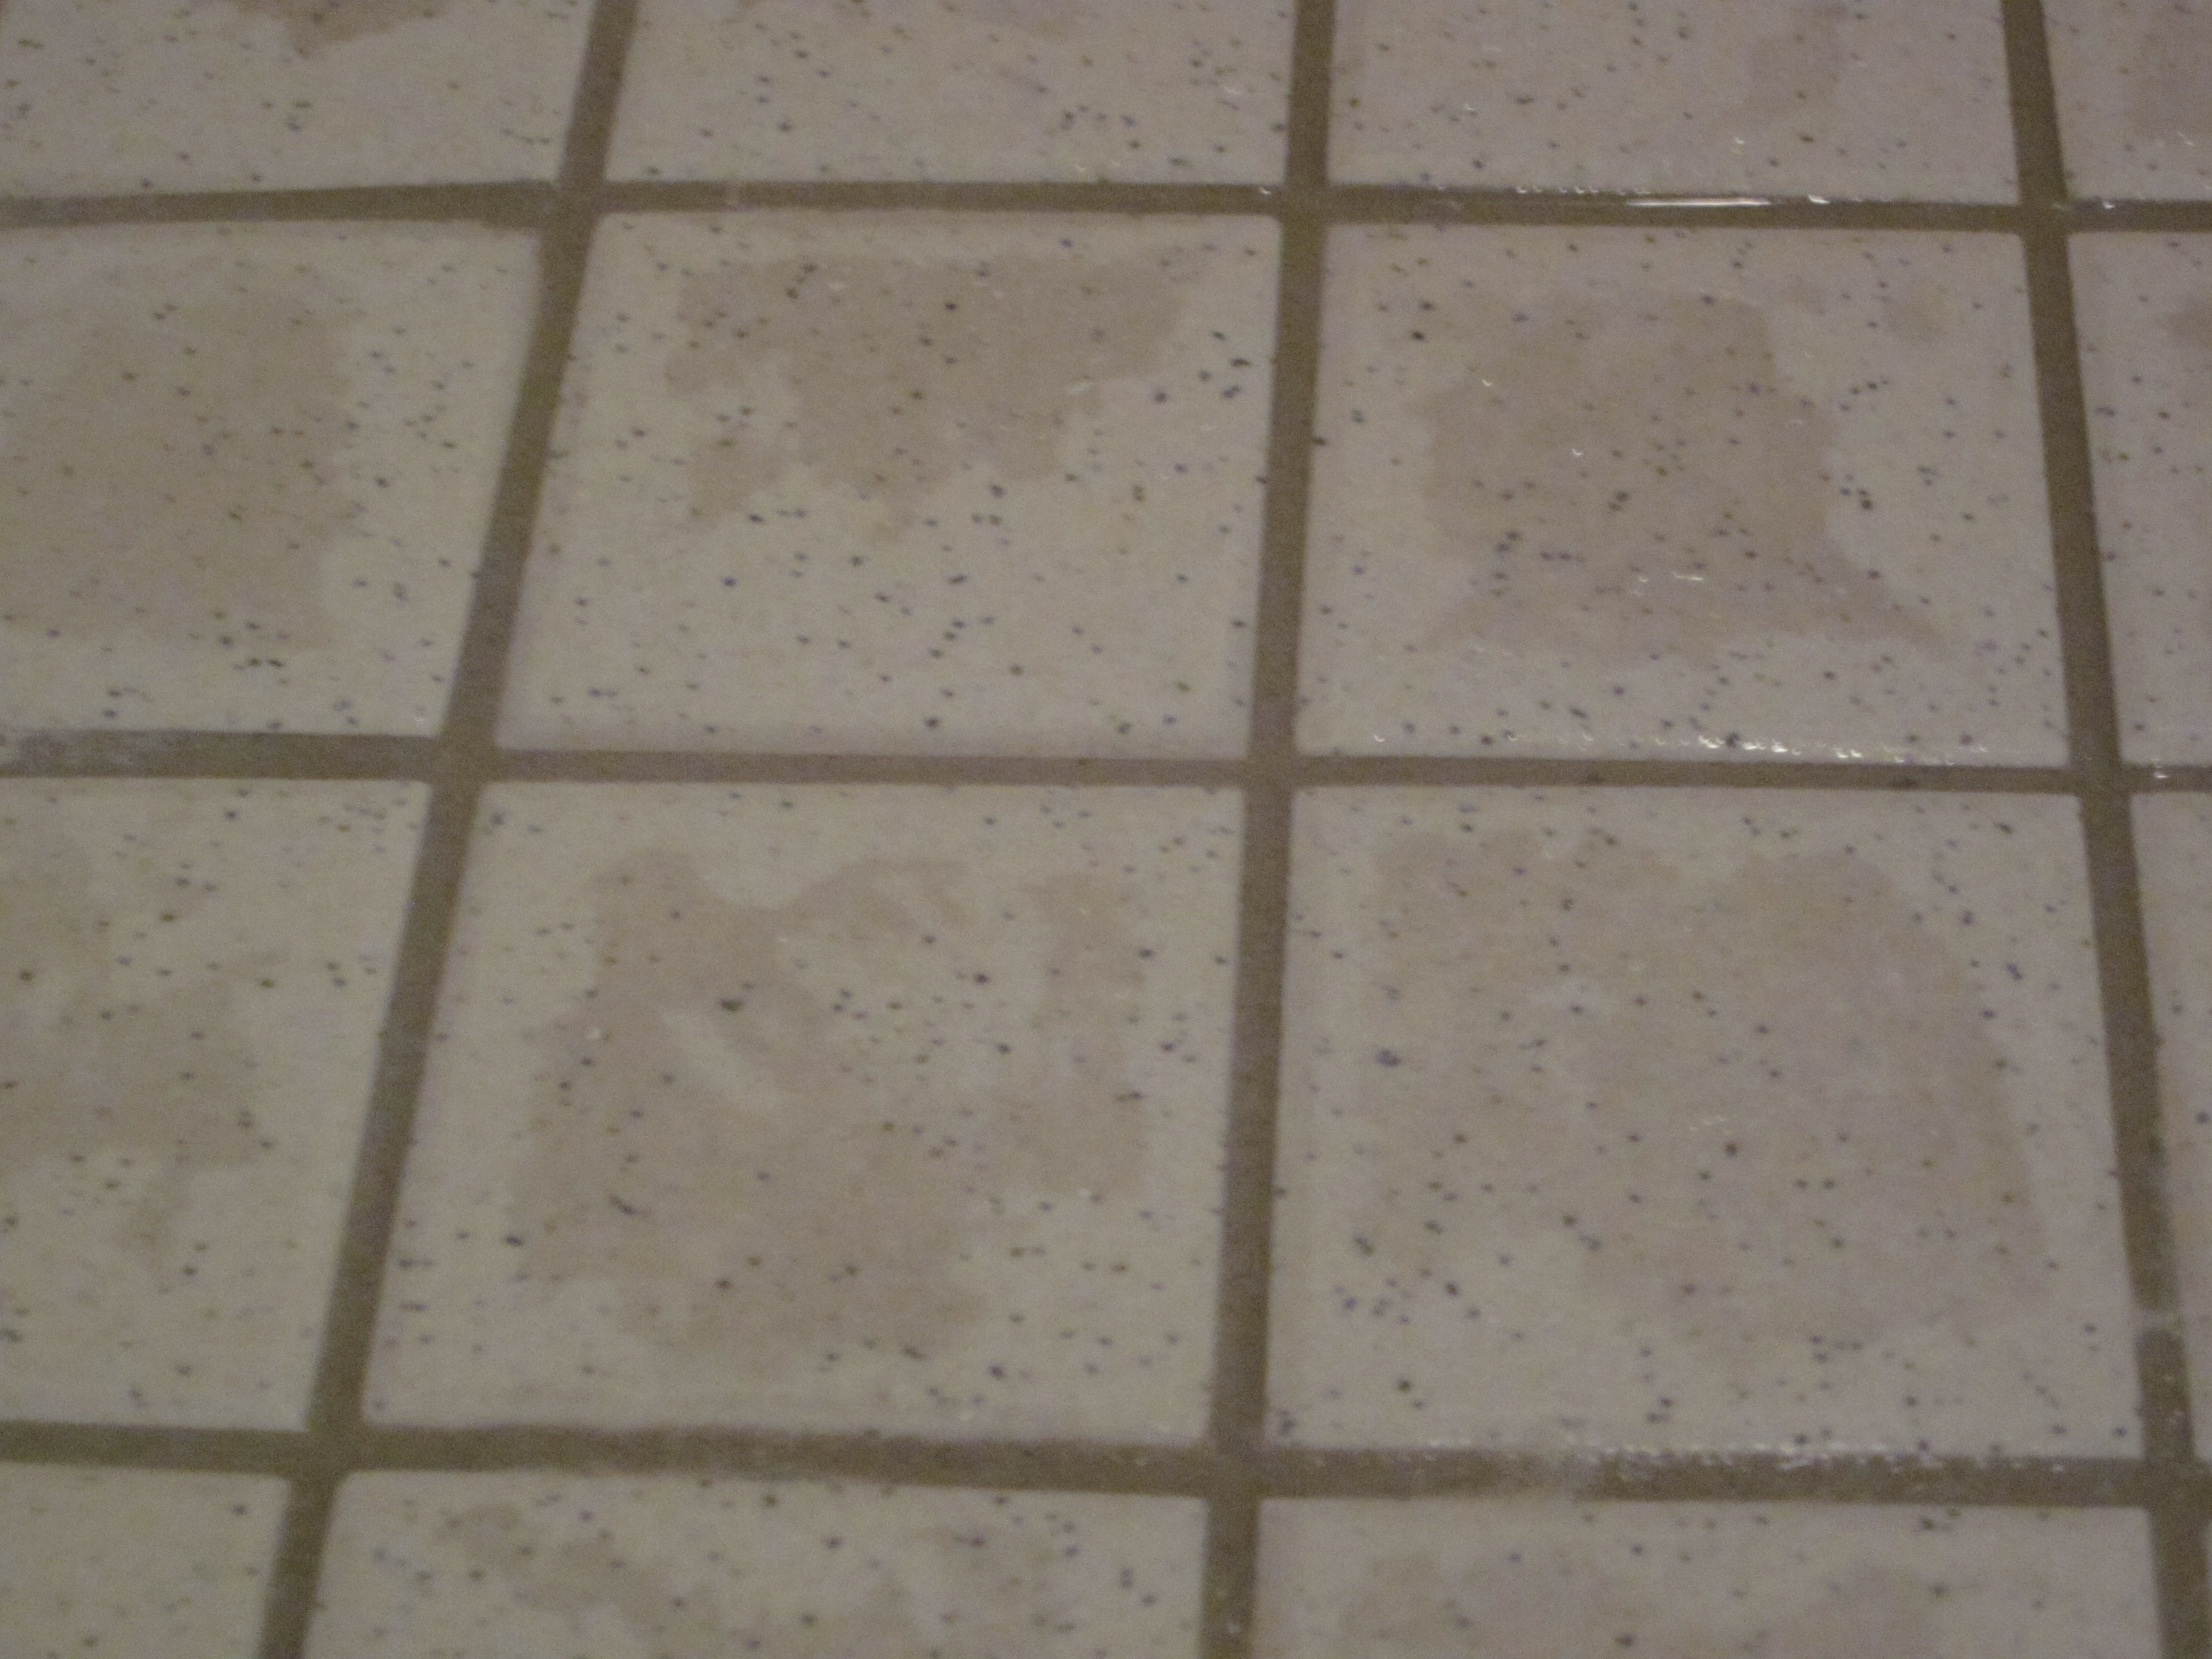 Cleaning Stains From Tile Entri Ways